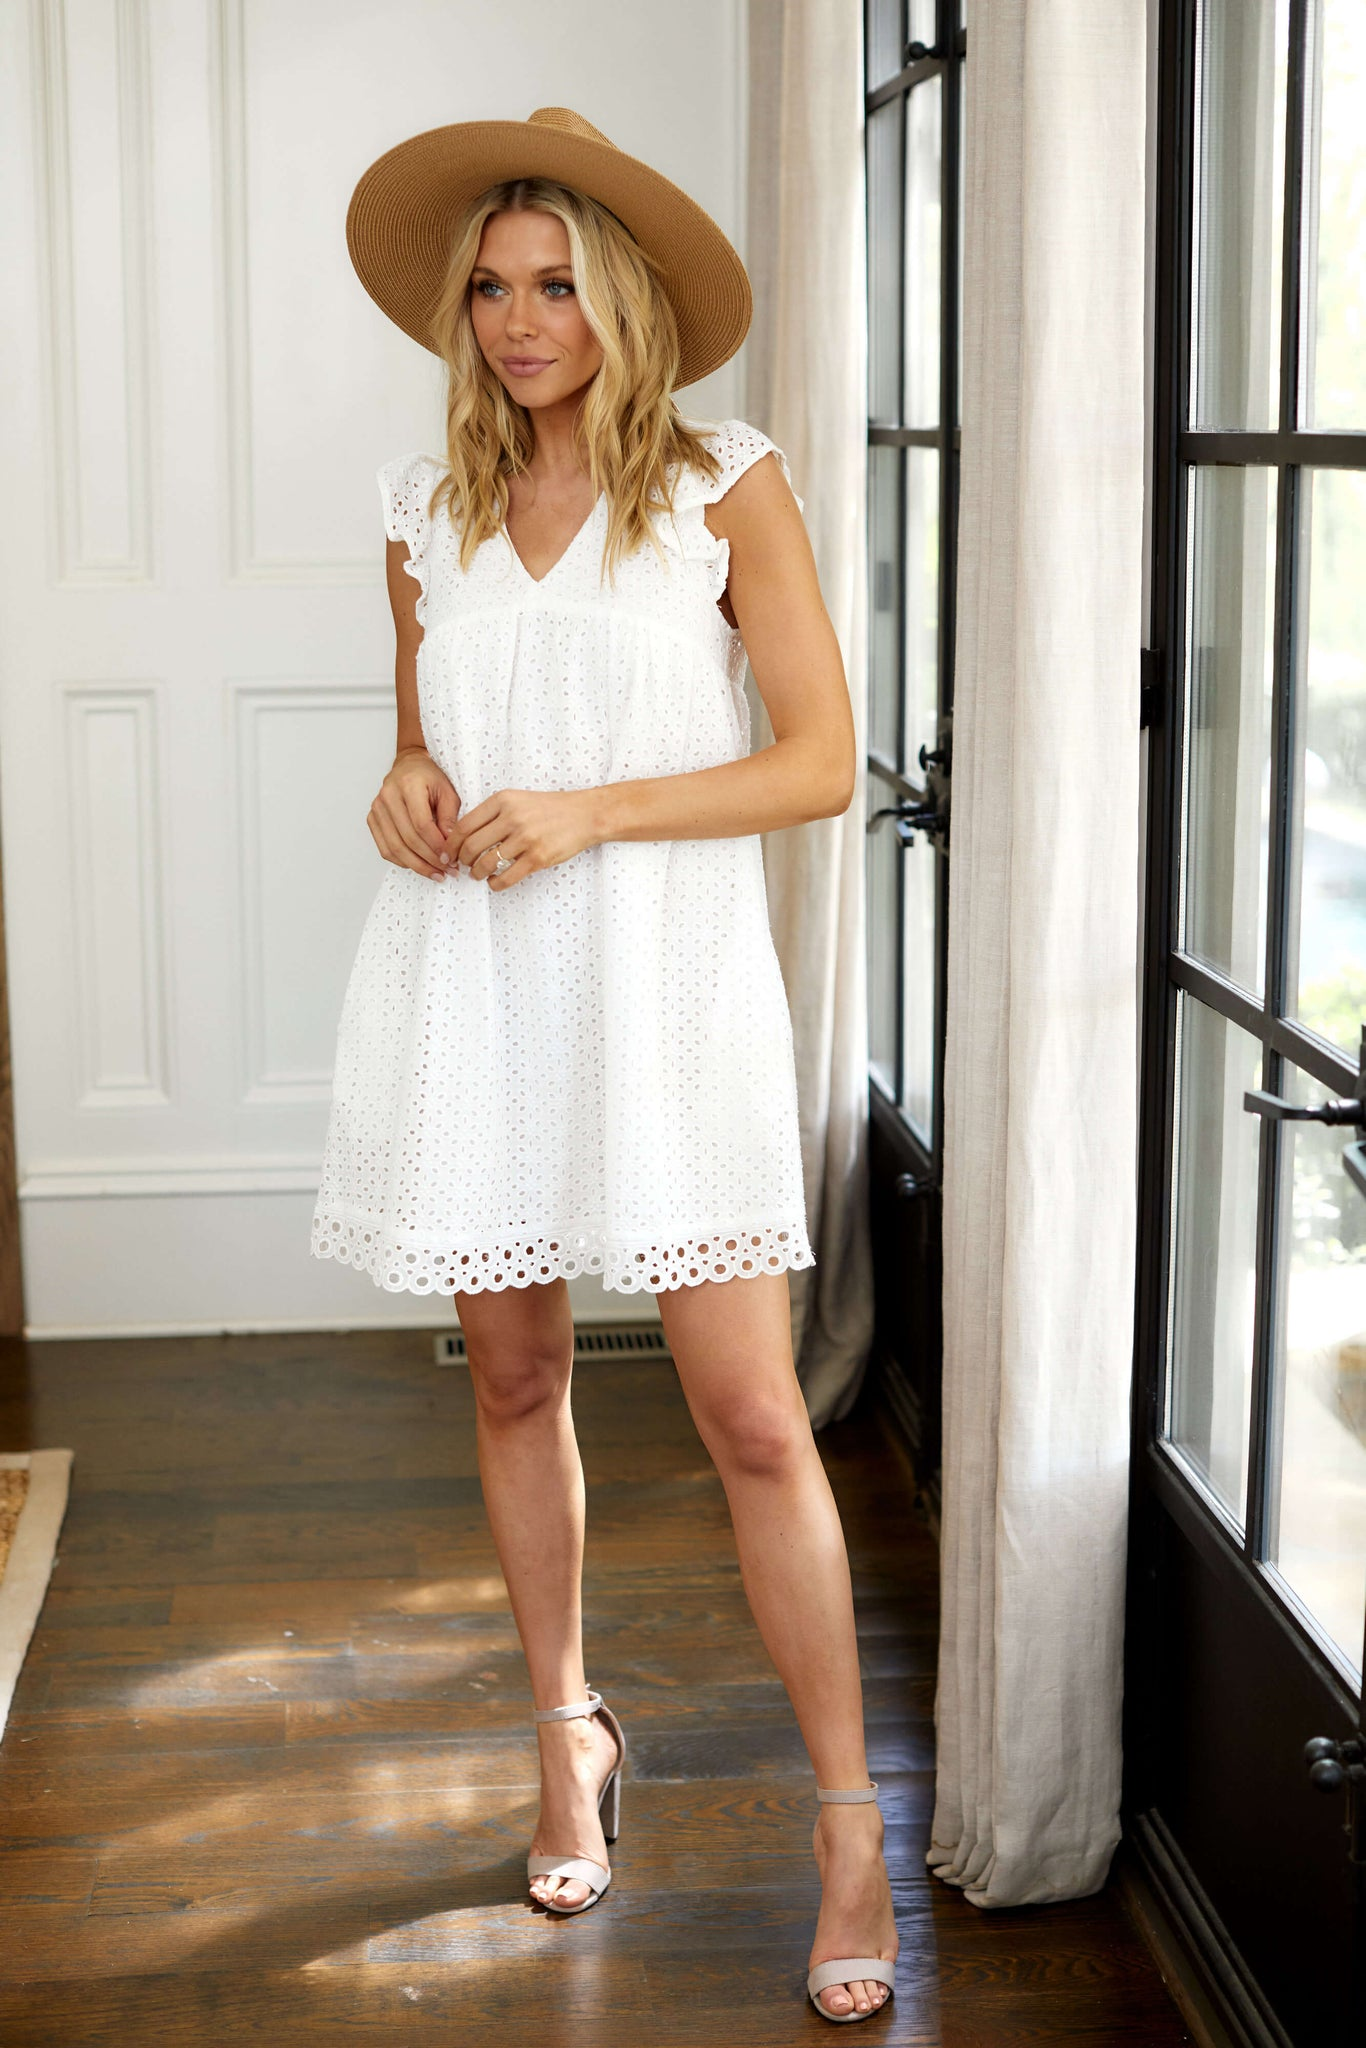 fab'rik - Baker Eyelet Mini Dress ProductImage-13730054012986